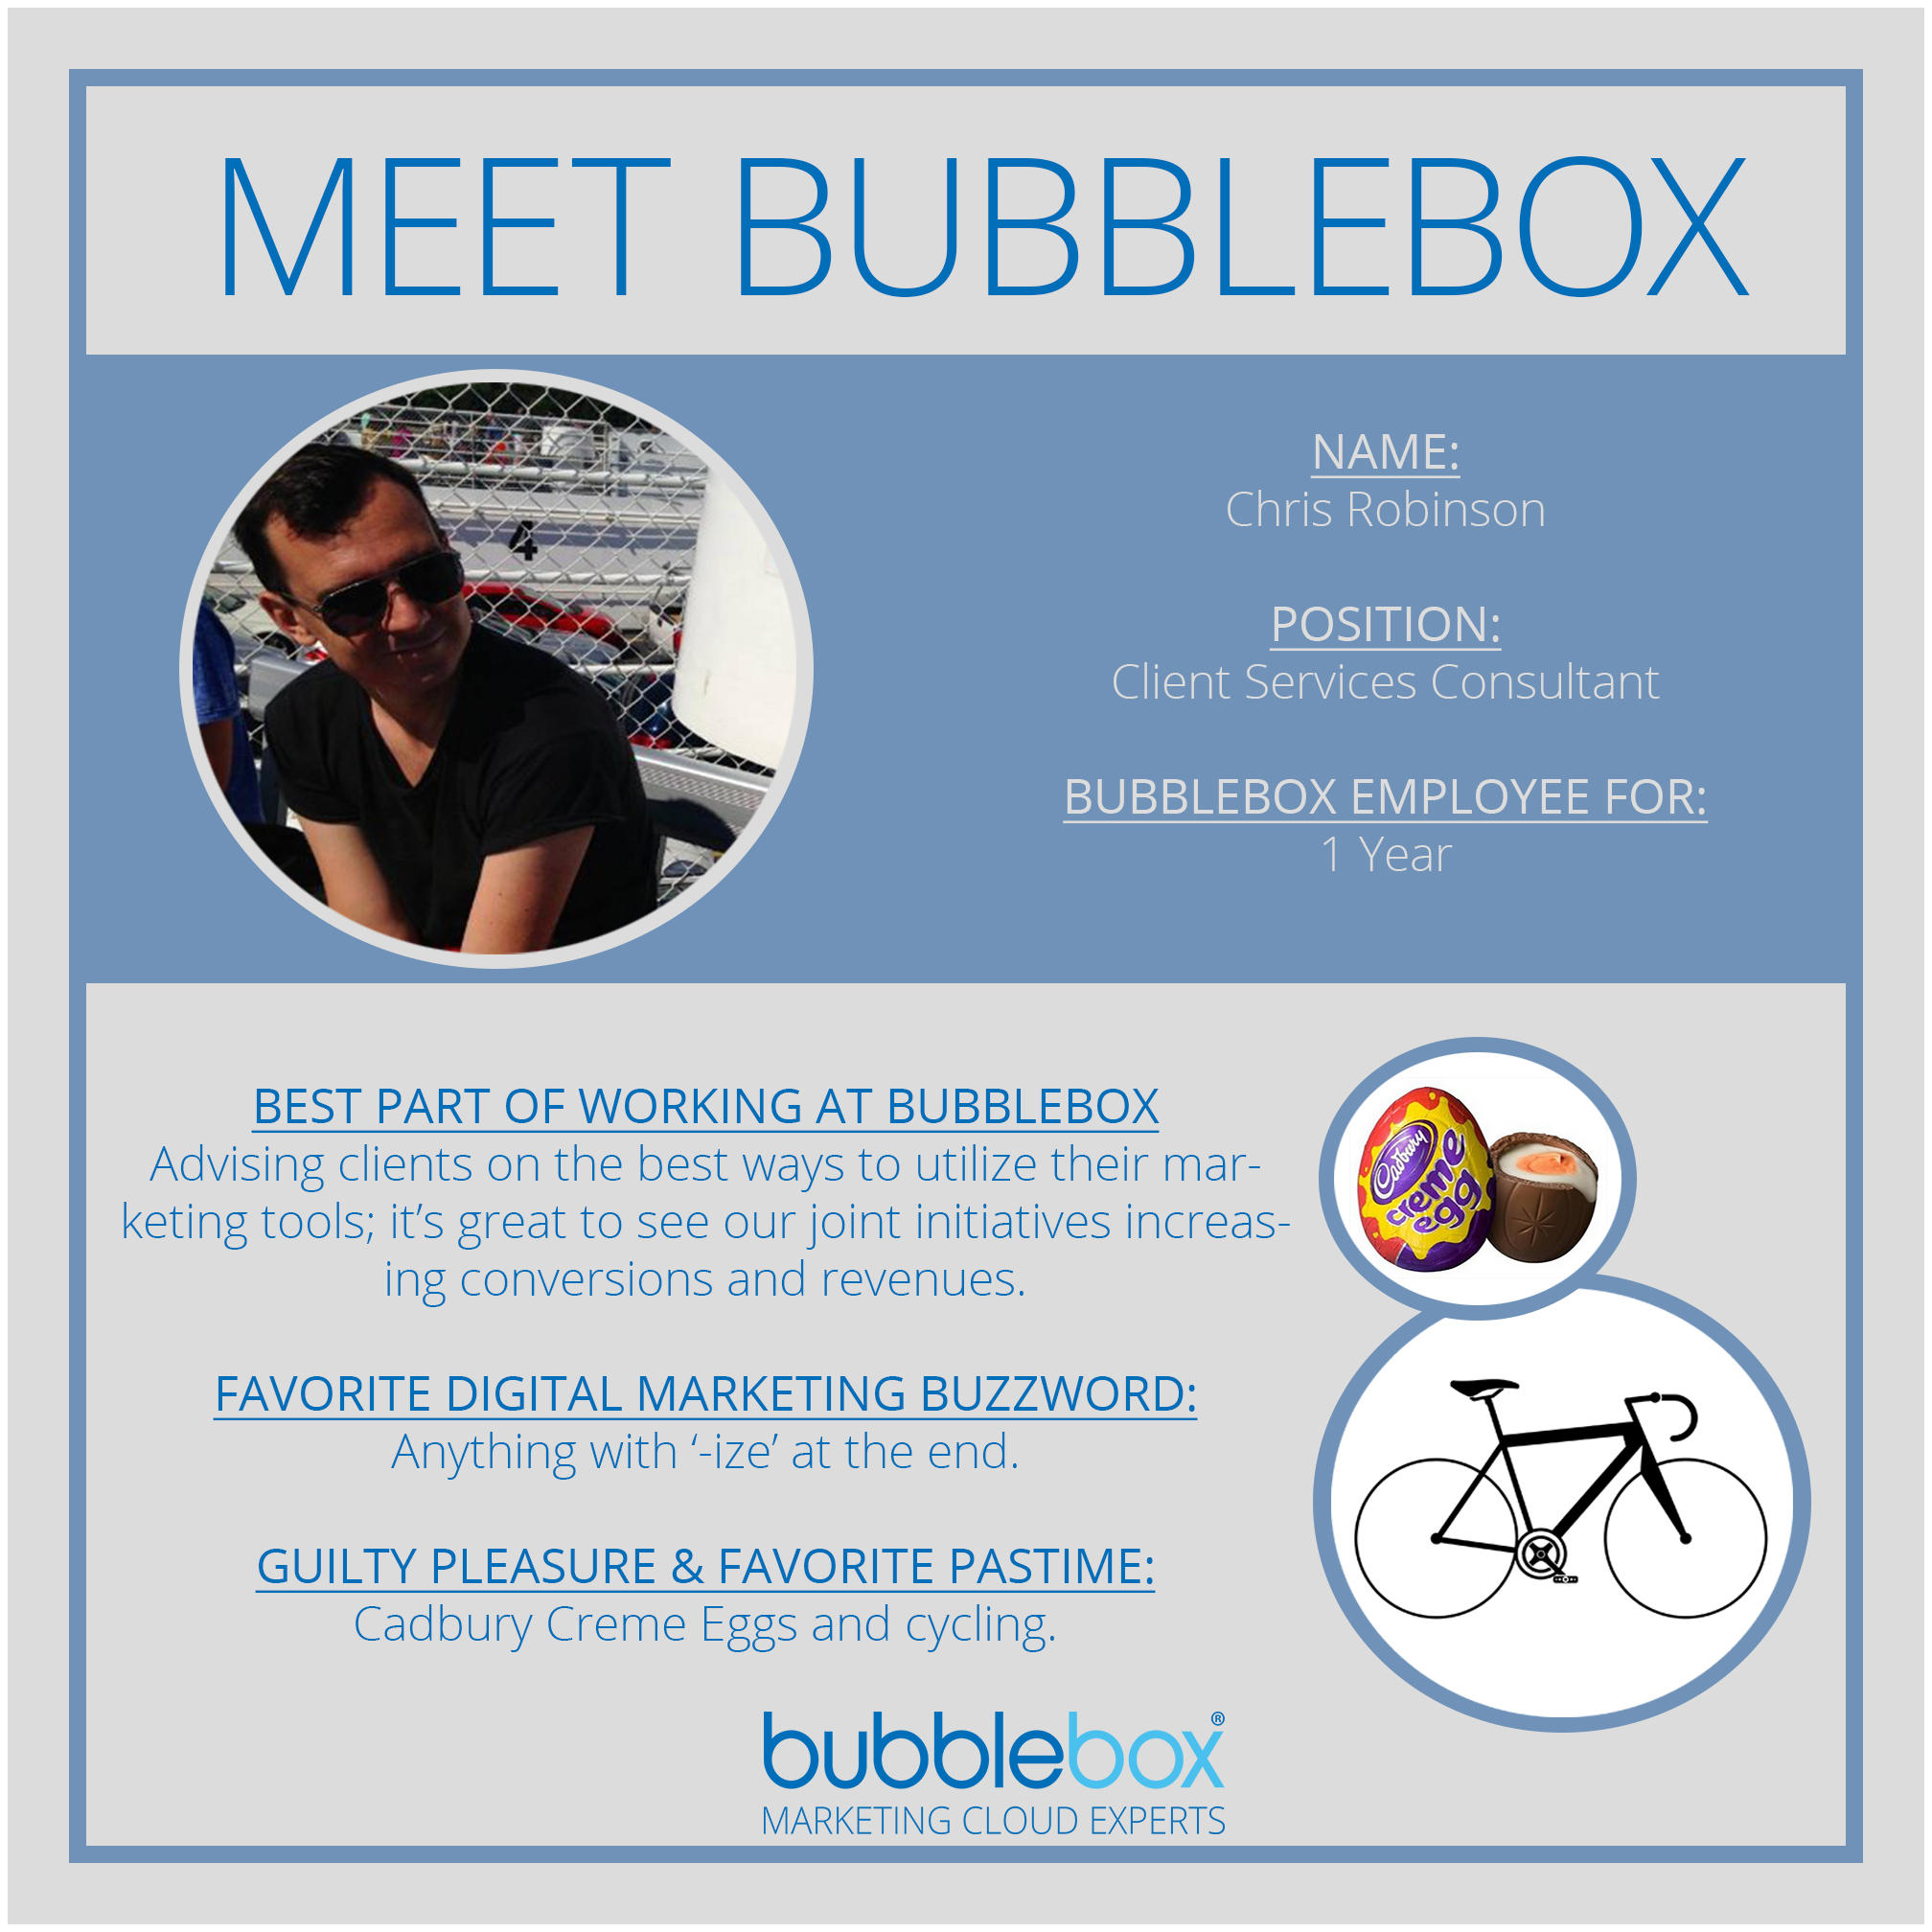 Meet Bubblebox Chris